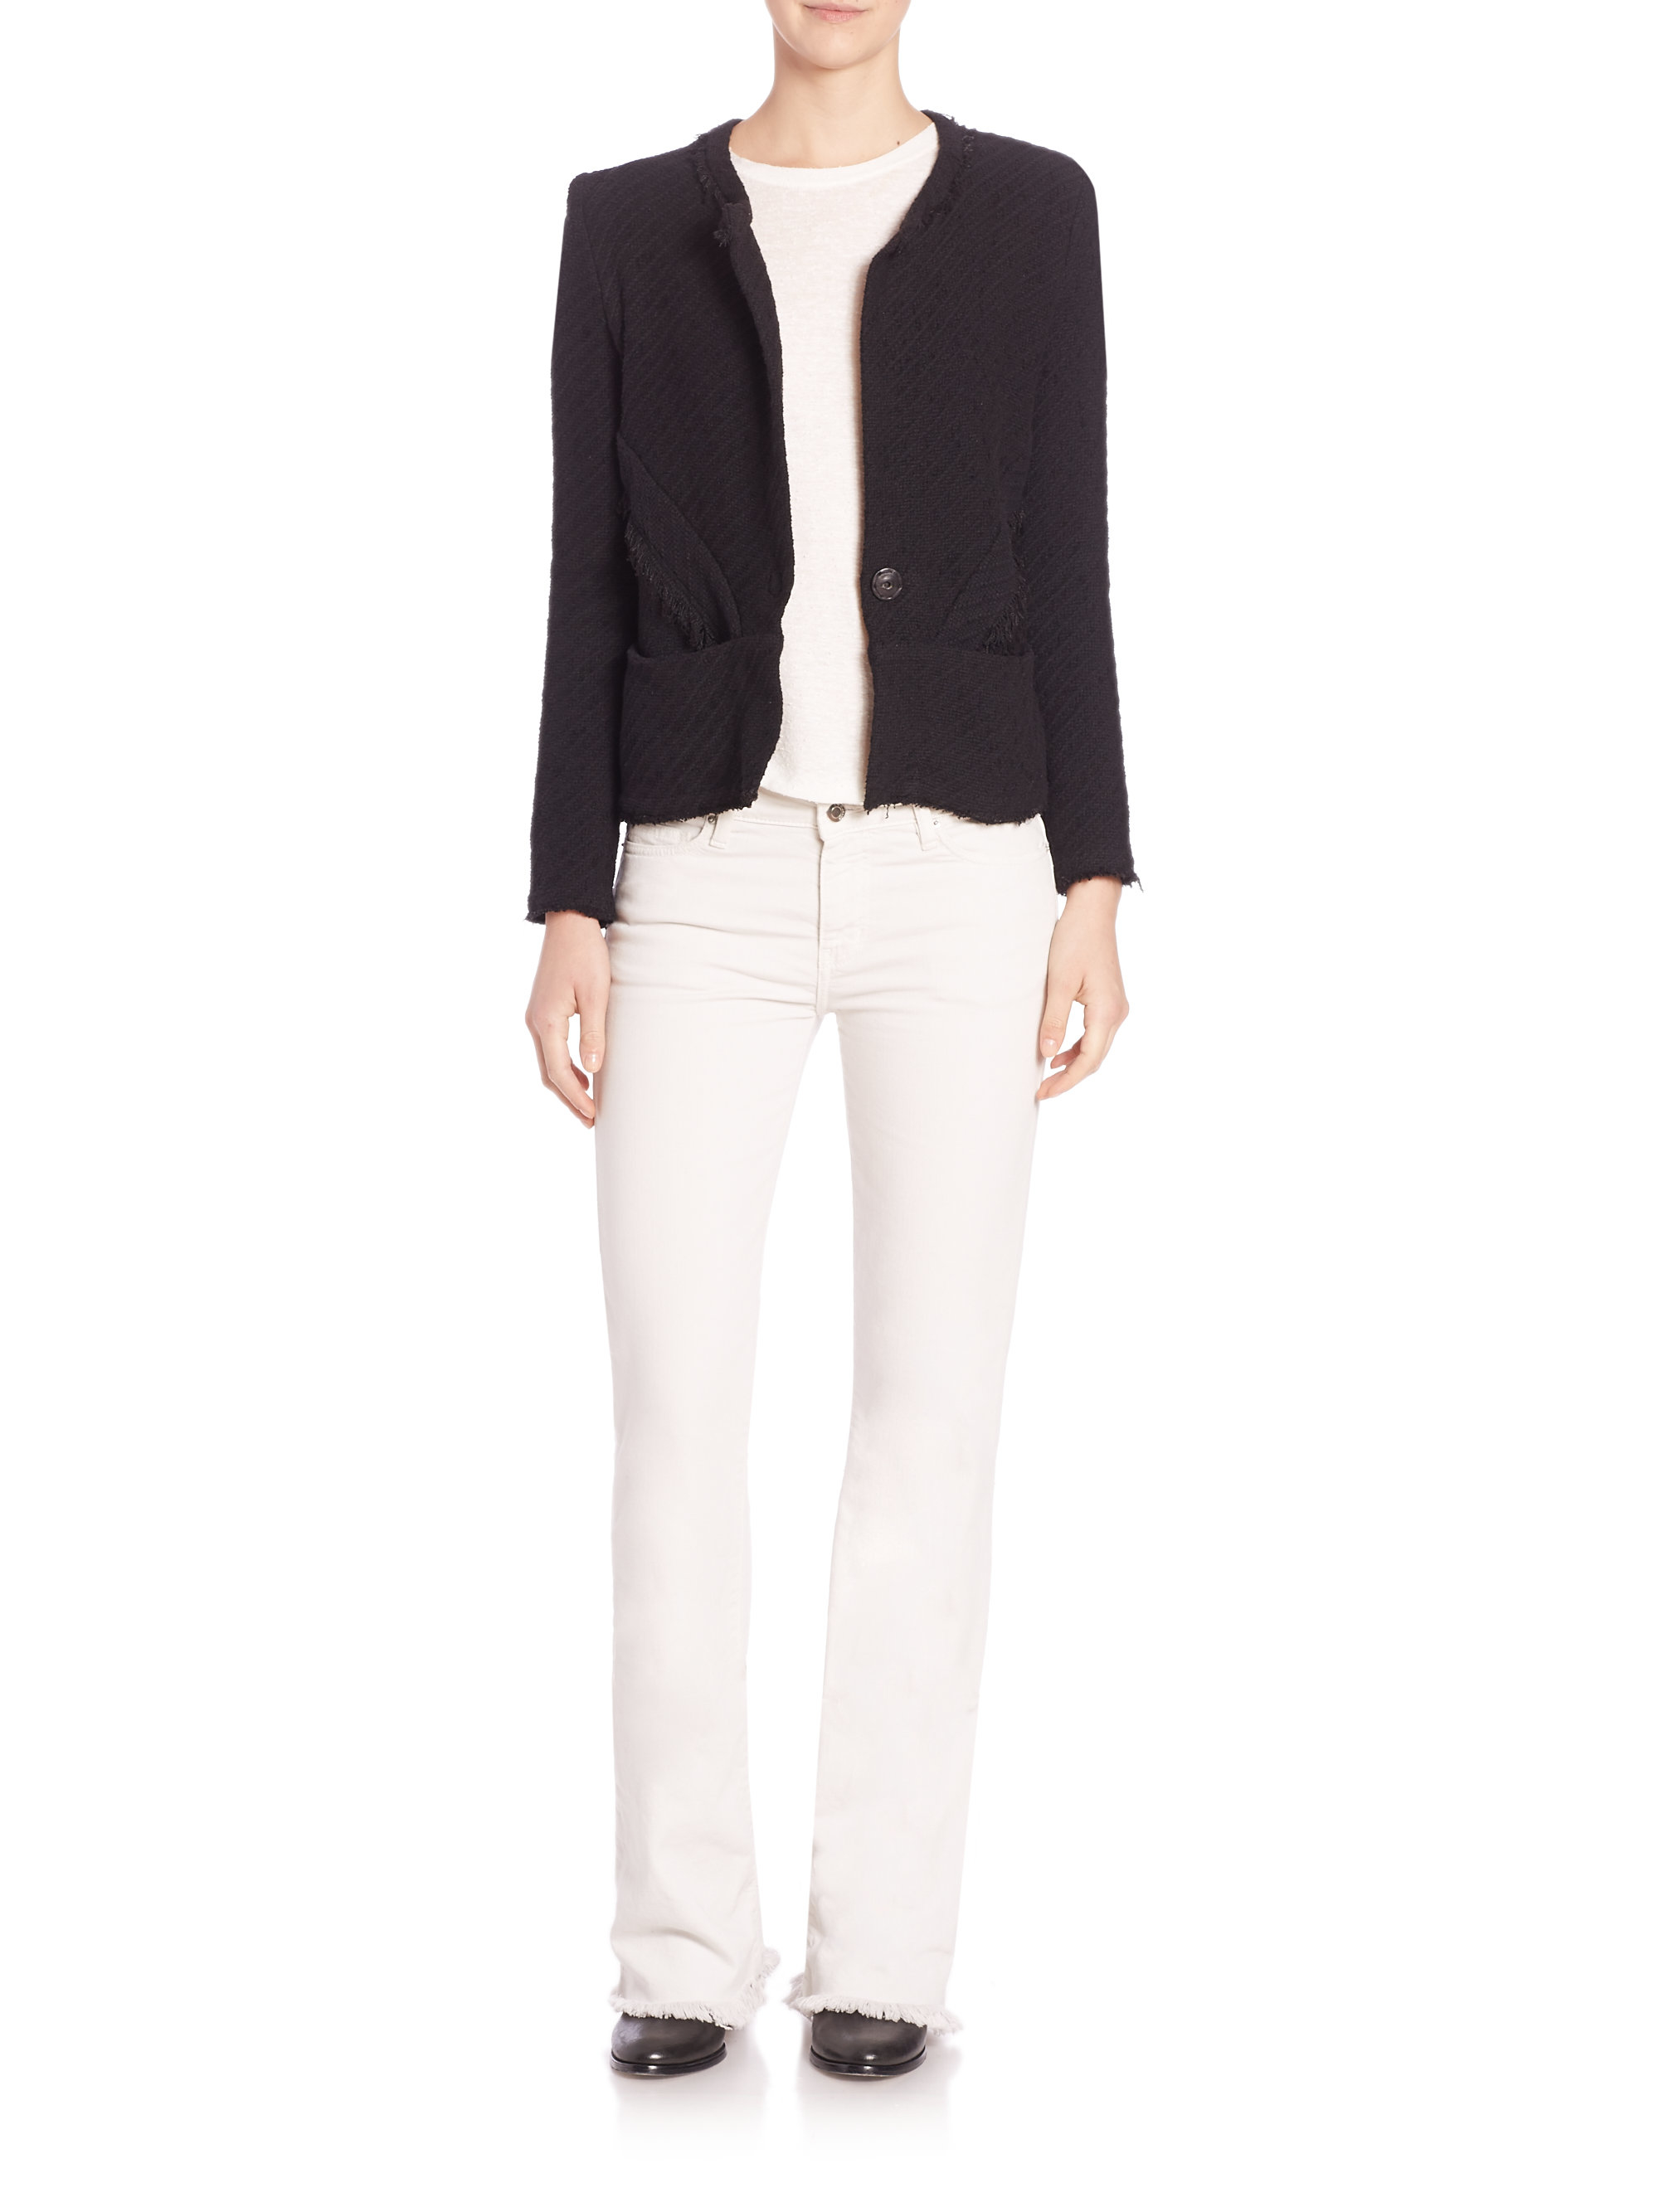 Iro 2016 Structured Harper Jacket Cheap Sale Sast Buy Cheap Inexpensive Clearance With Credit Card Fast Delivery Cheap Price Outlet Shop mtR96exE